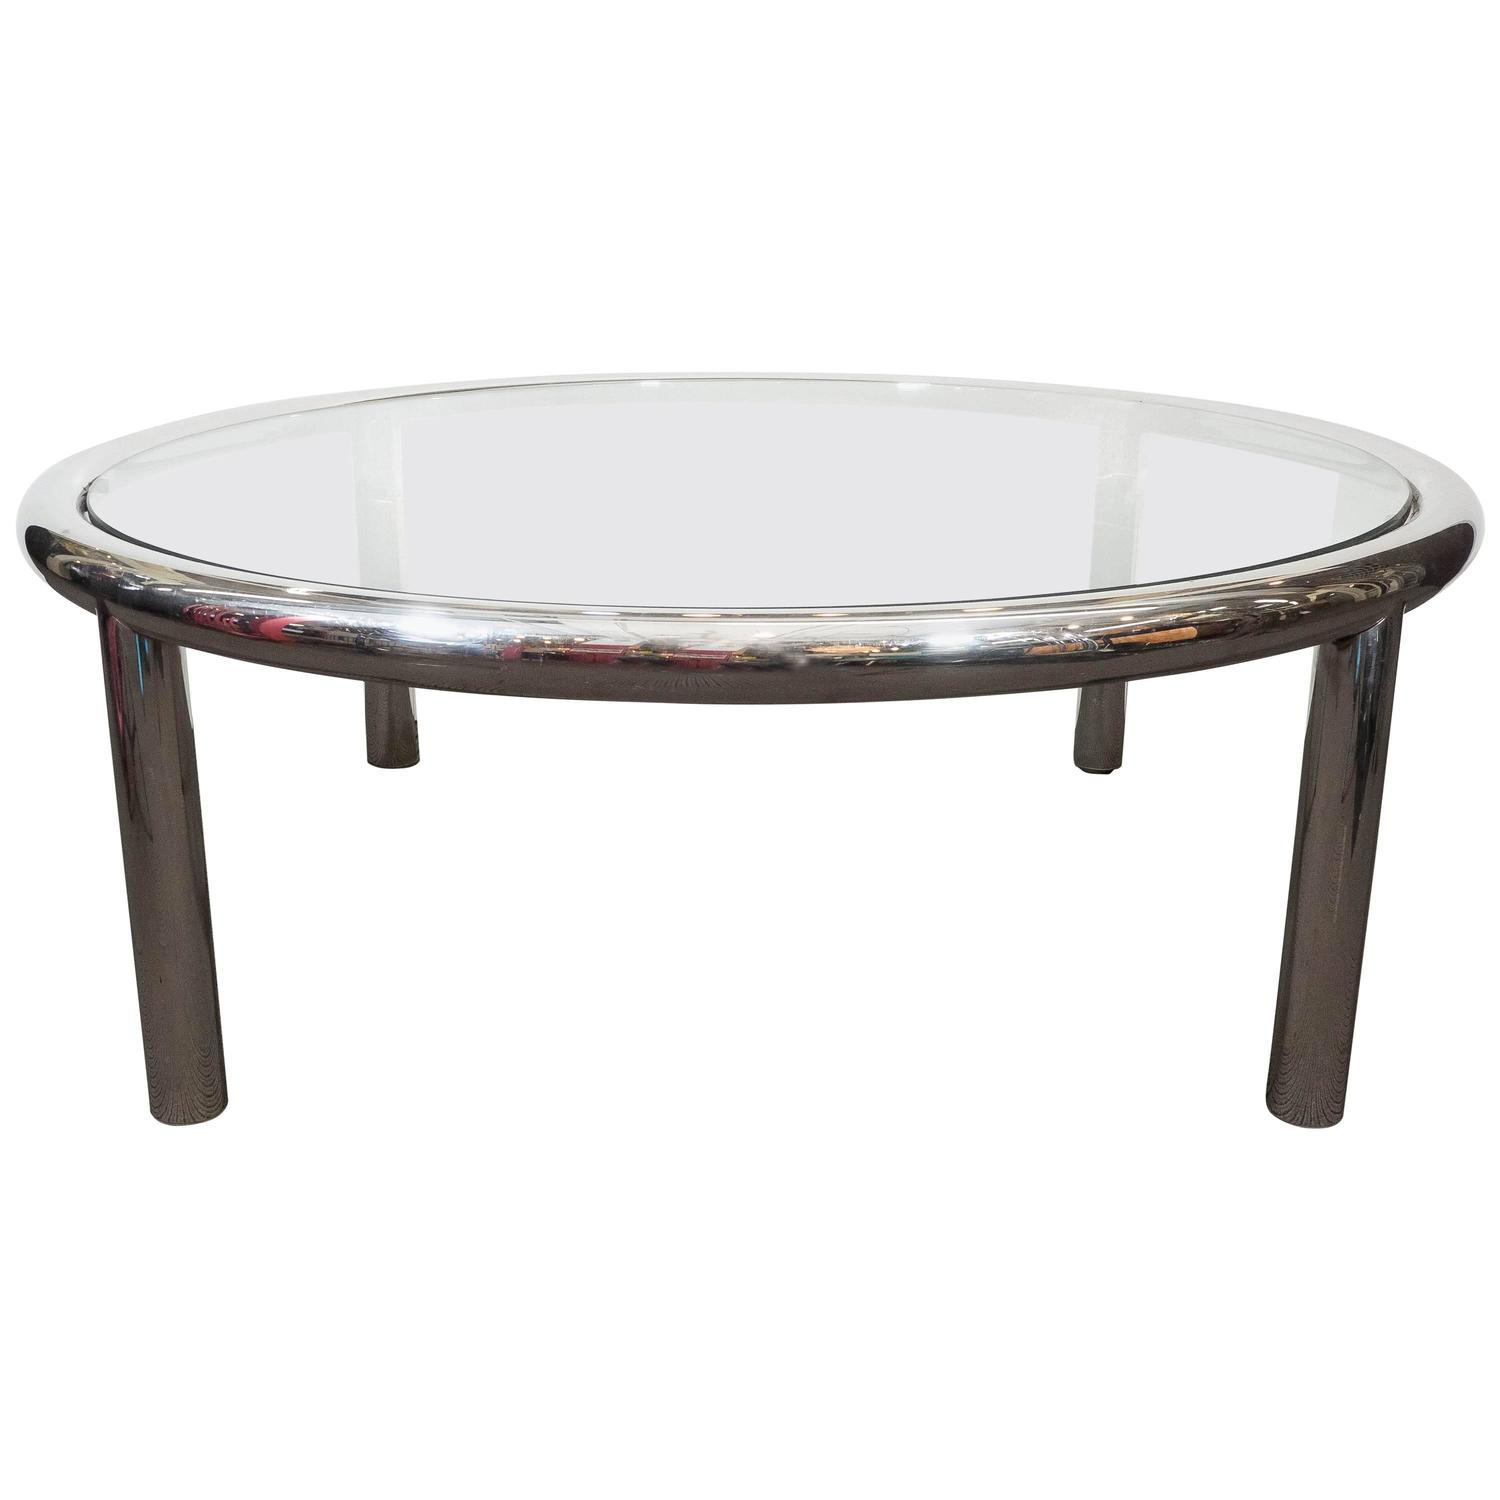 Tubular chrome glass top round coffee table for sale at for Round glass coffee table top